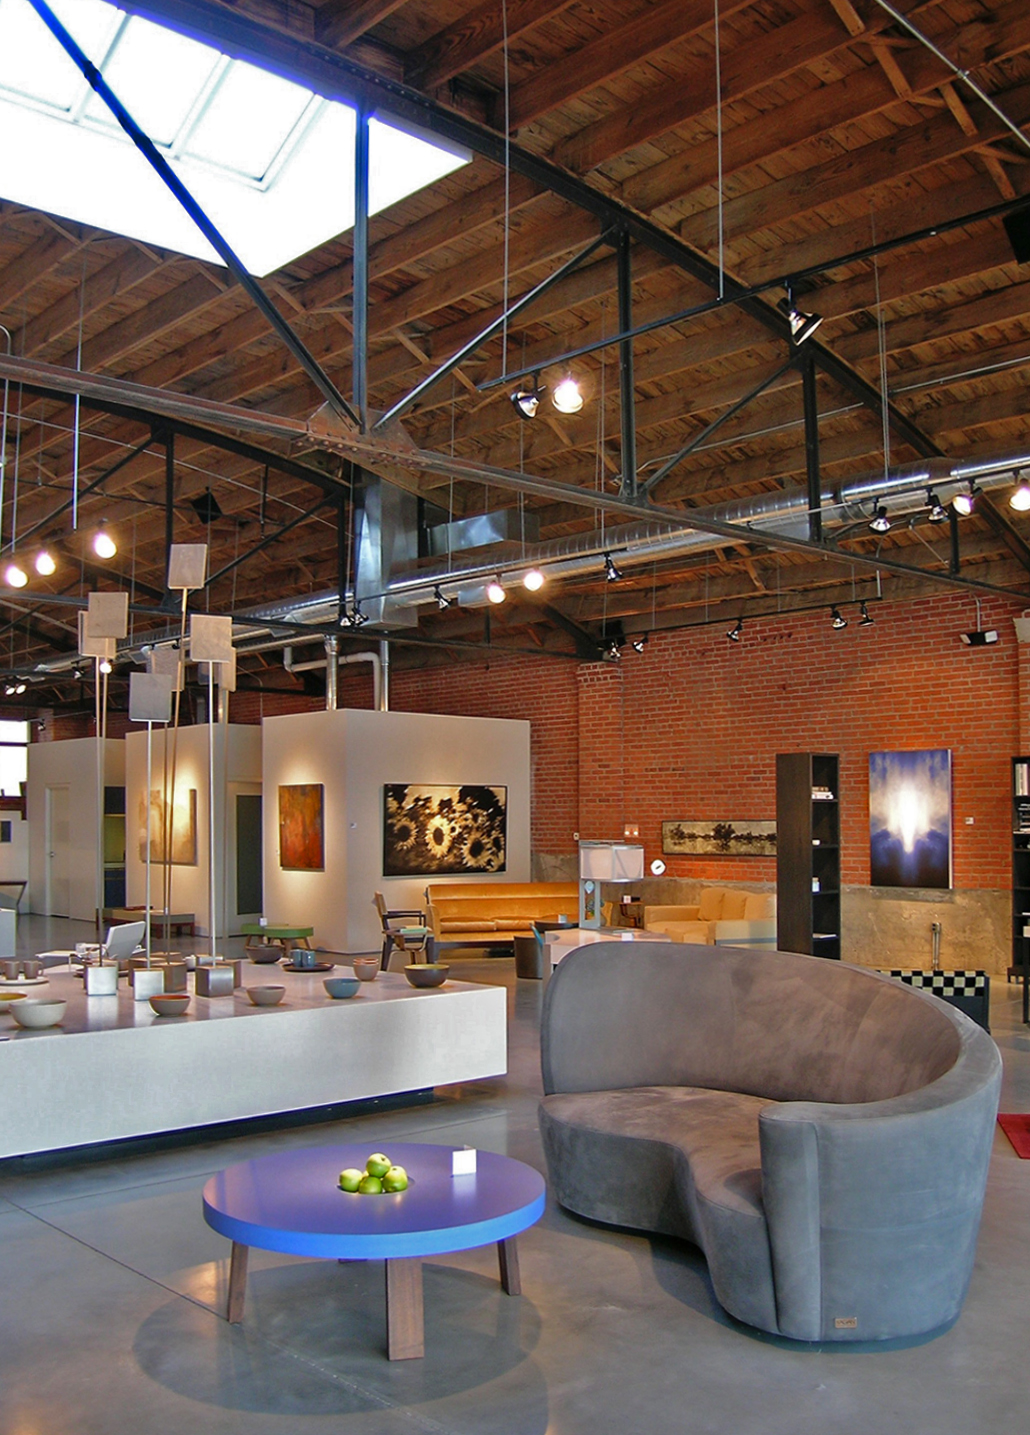 Poolehaus residential design commercial interiors for Interior designer design kansas city